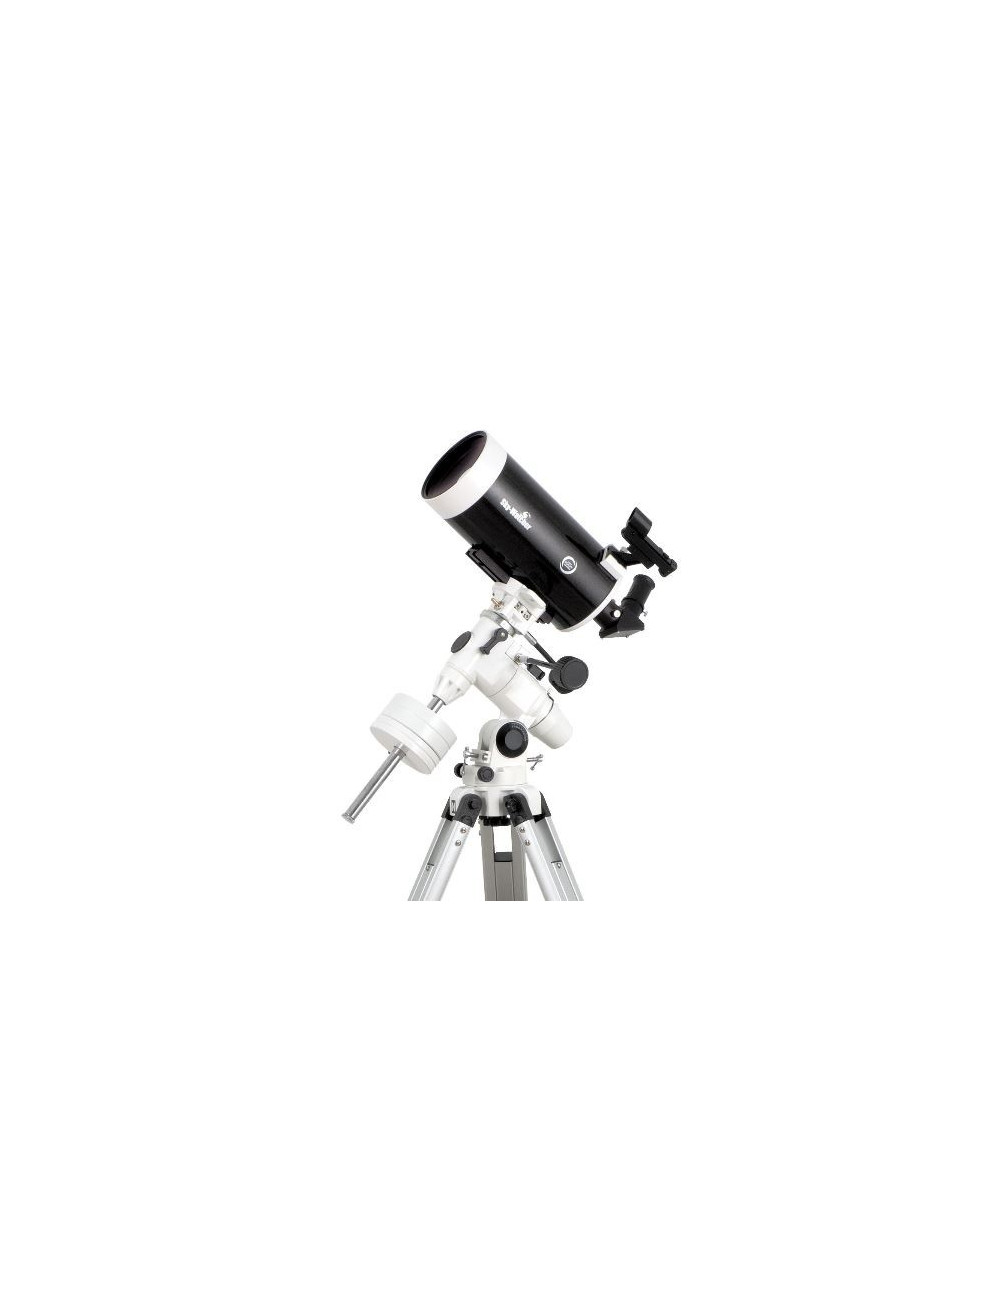 Télescope Sky-Watcher Mak 127/1500 sur EQ3-2